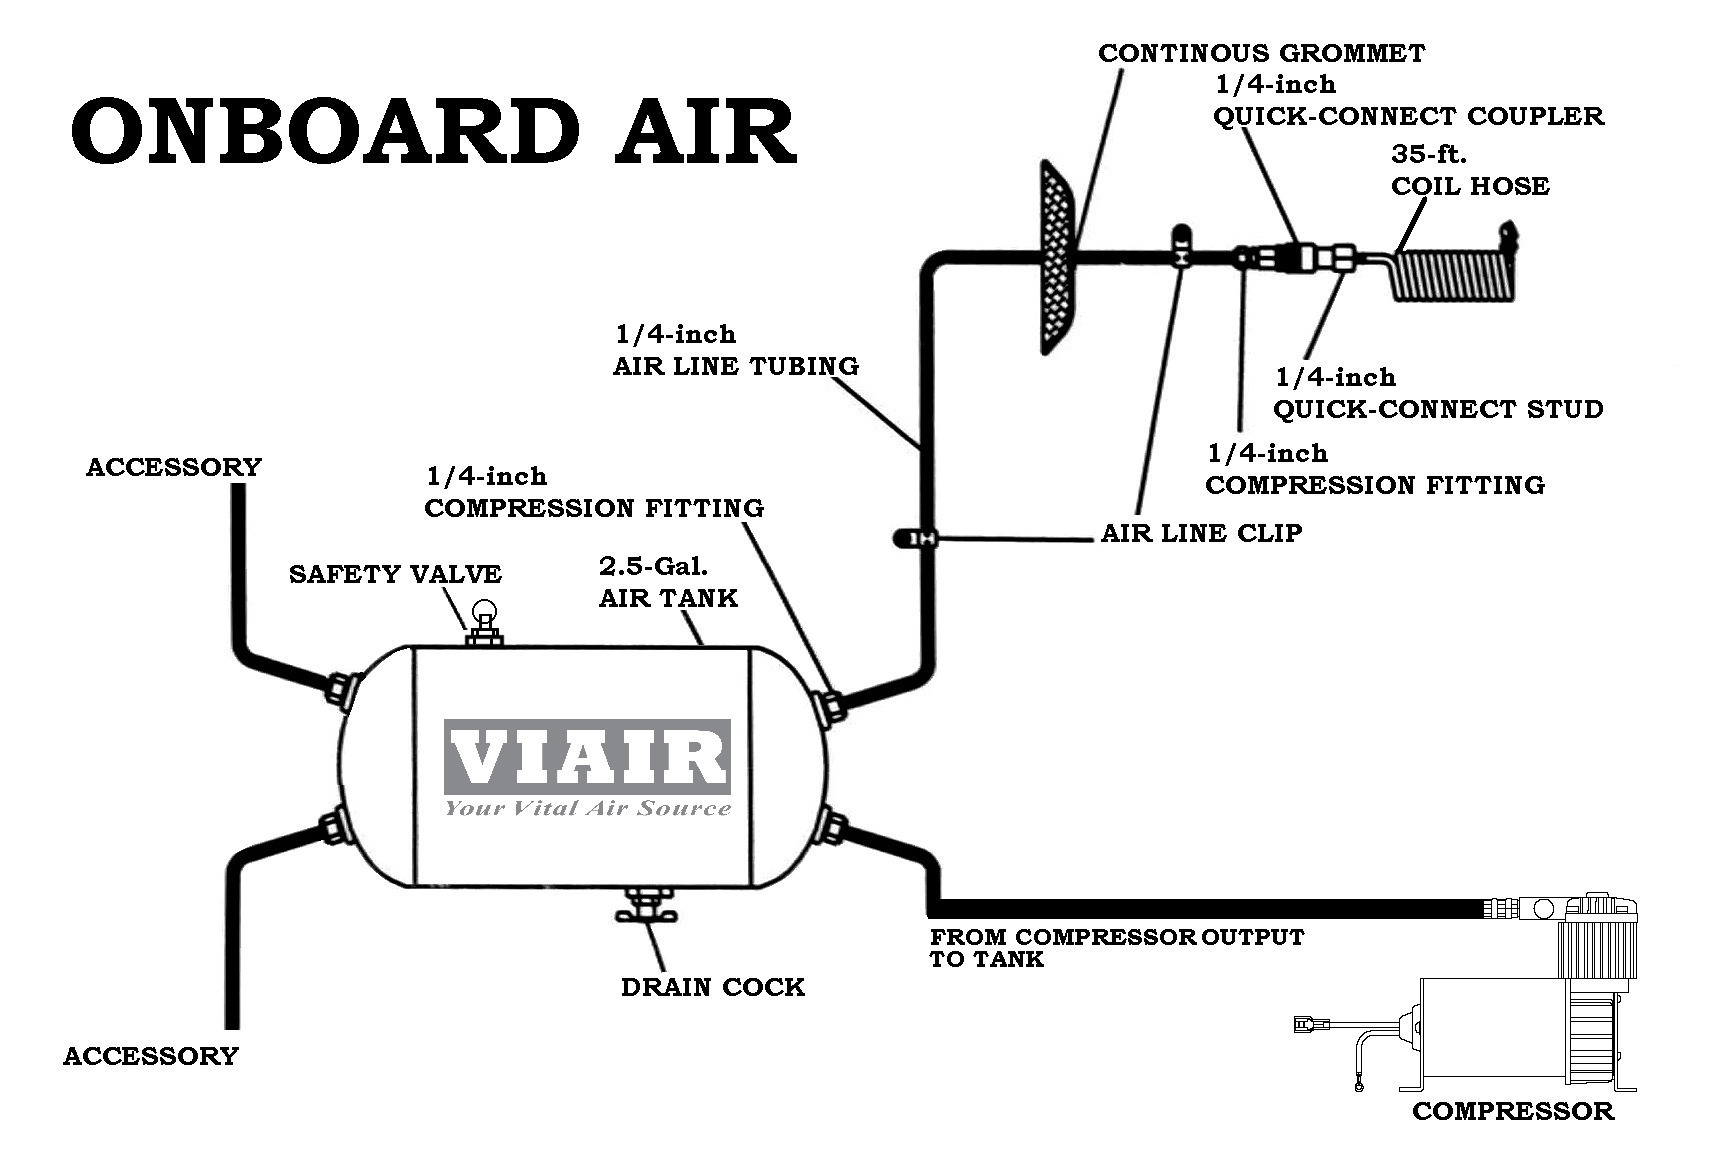 onboard_air air compressor wiring diagram schematic air compressor motor air compressor wiring harness at reclaimingppi.co